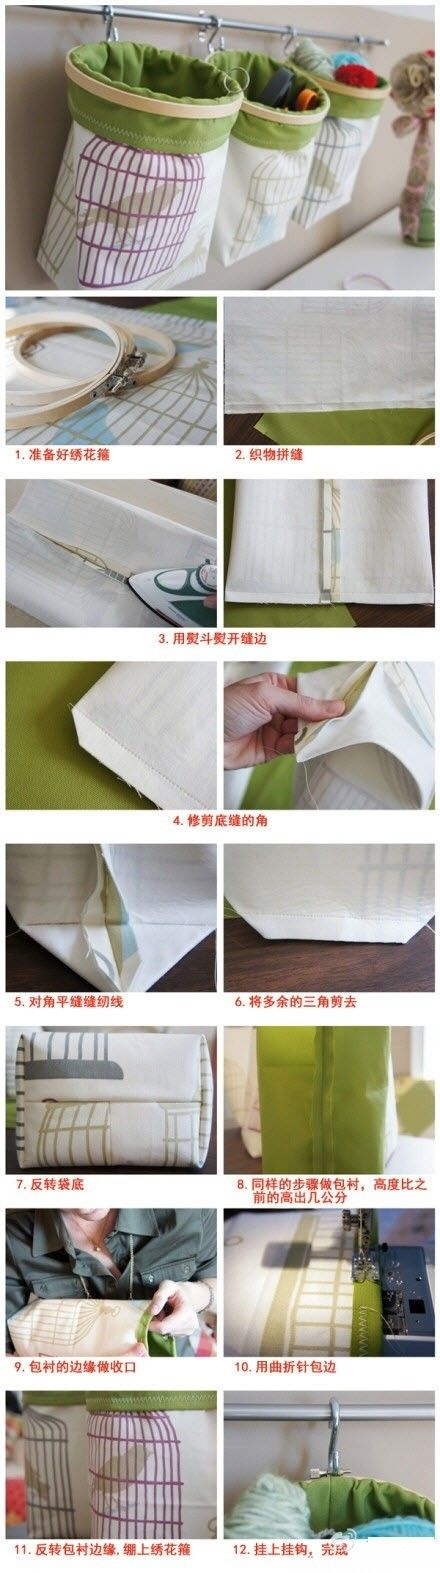 This is super cute.  Too bad my sewing skills are roughly equivalent to my Asian language reading skills.